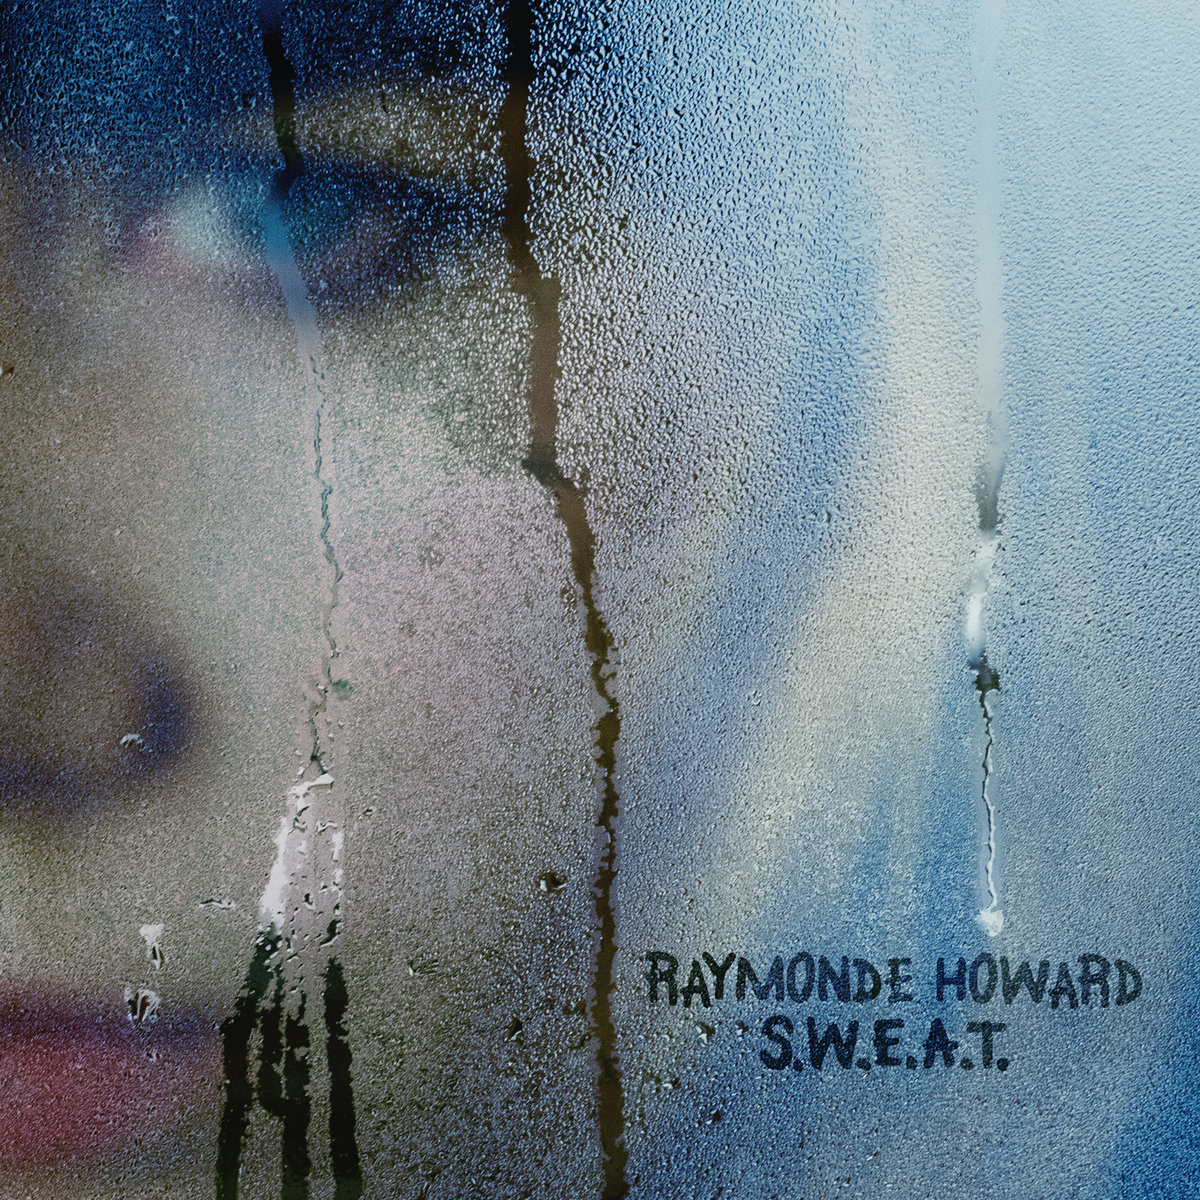 RAYMONDE HOWARD S.w.e.a.t. – Vinyl LP (black)